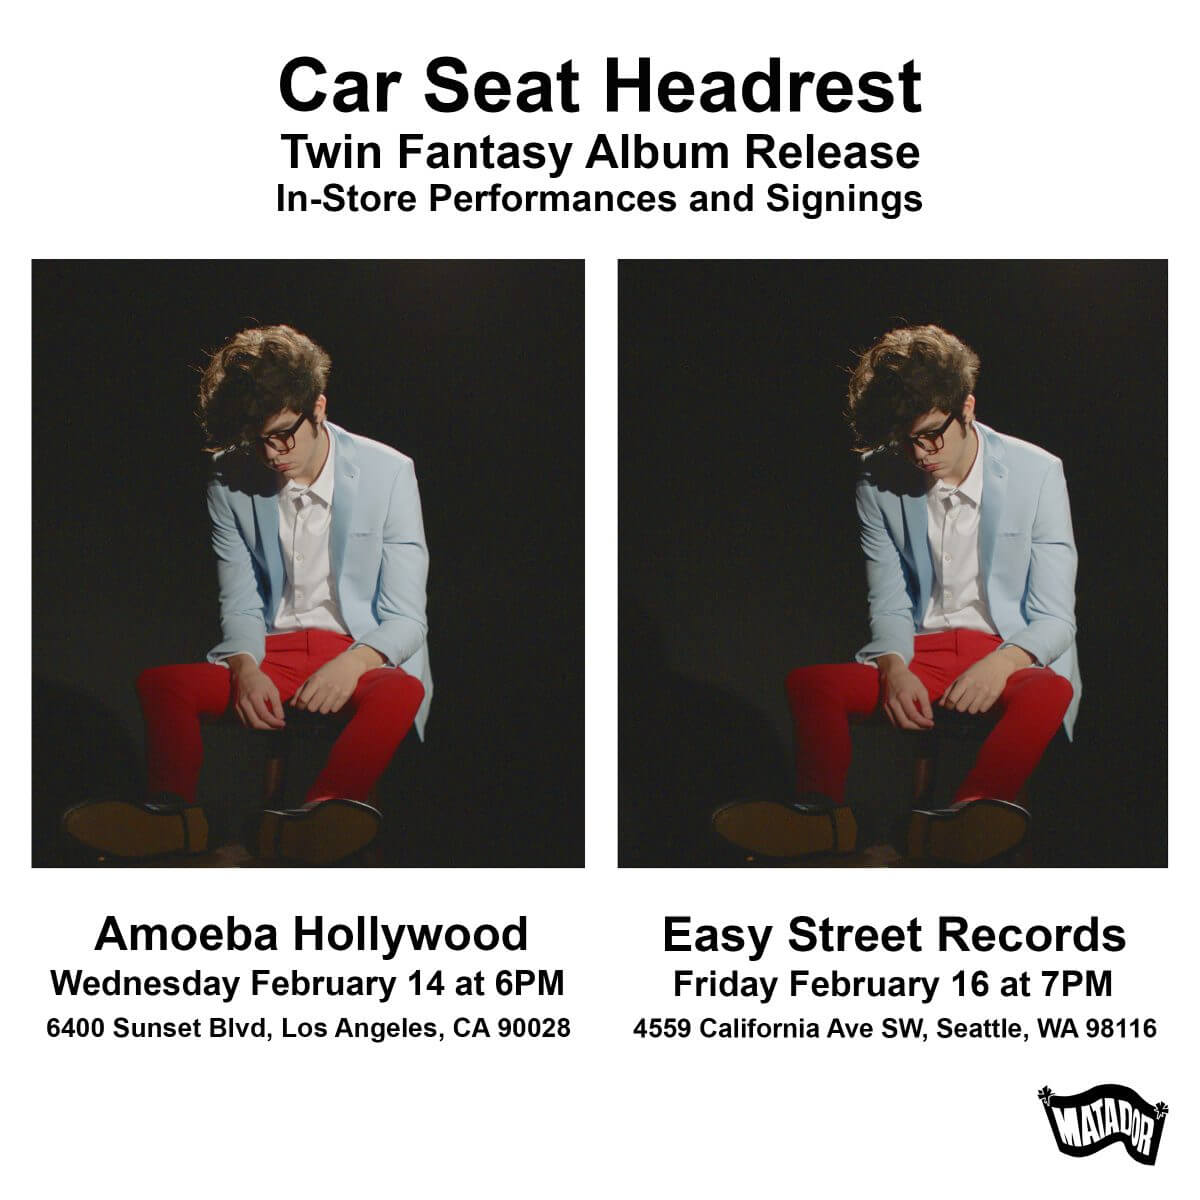 Car Seat Headrest – In-Store Performances and Signings